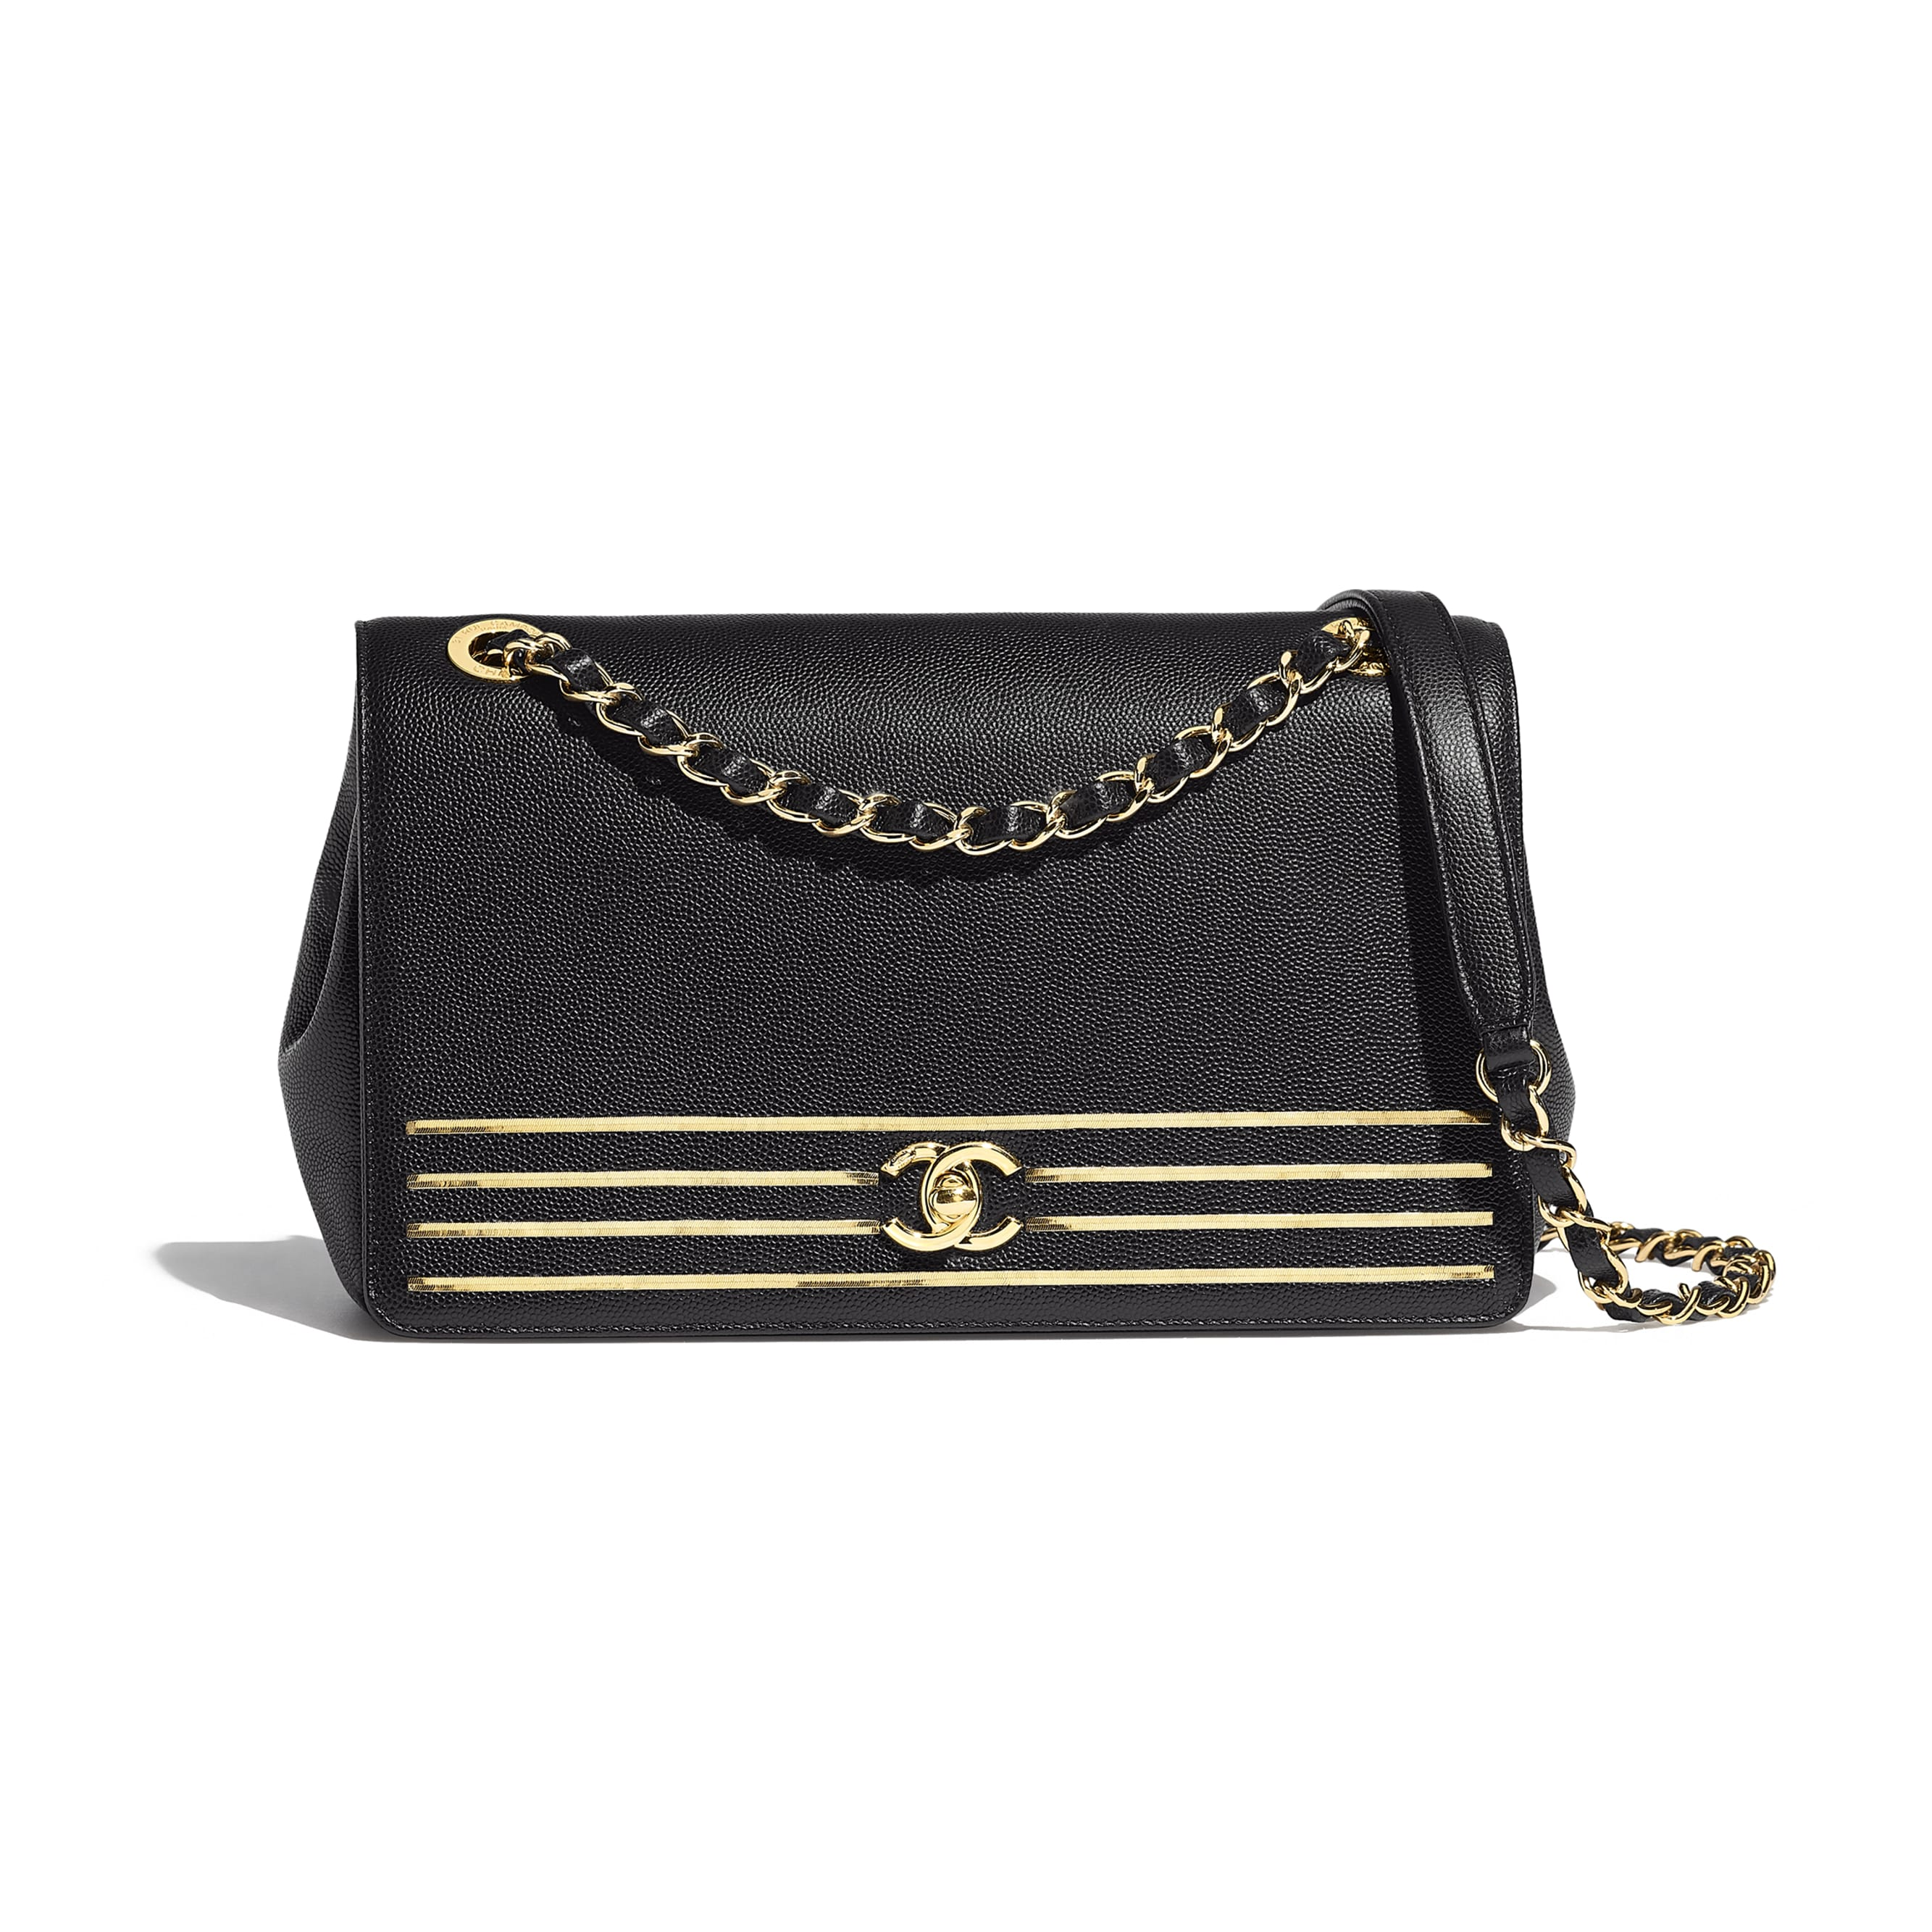 Flap Bag - Black - Embroidered Grained Calfskin & Gold-Tone Metal - Default view - see standard sized version